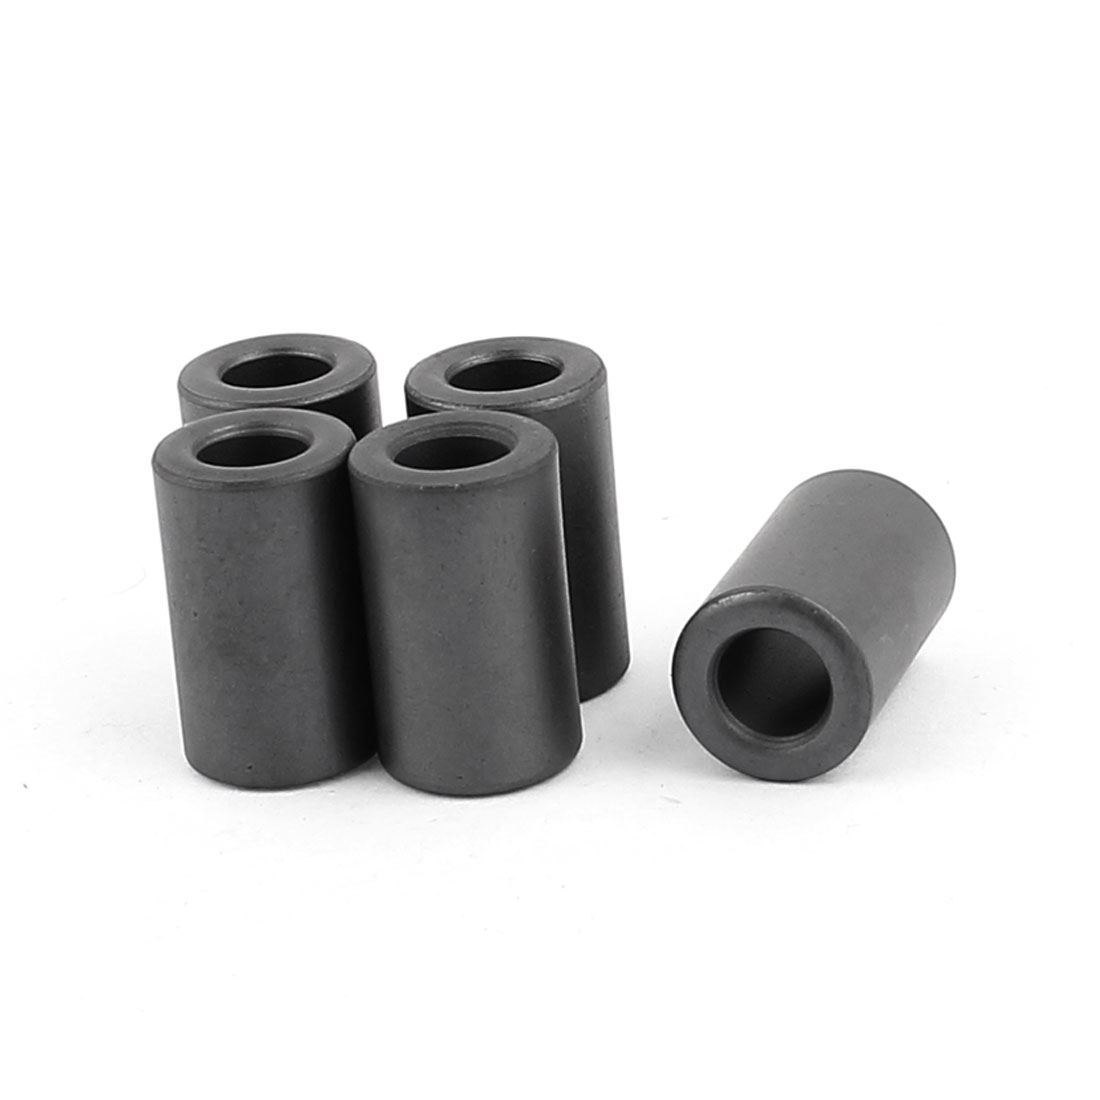 UXCELL 5Pcs M6 X 20 X 12Mm Ferrite Bead Toroid Cores For Filters Coils